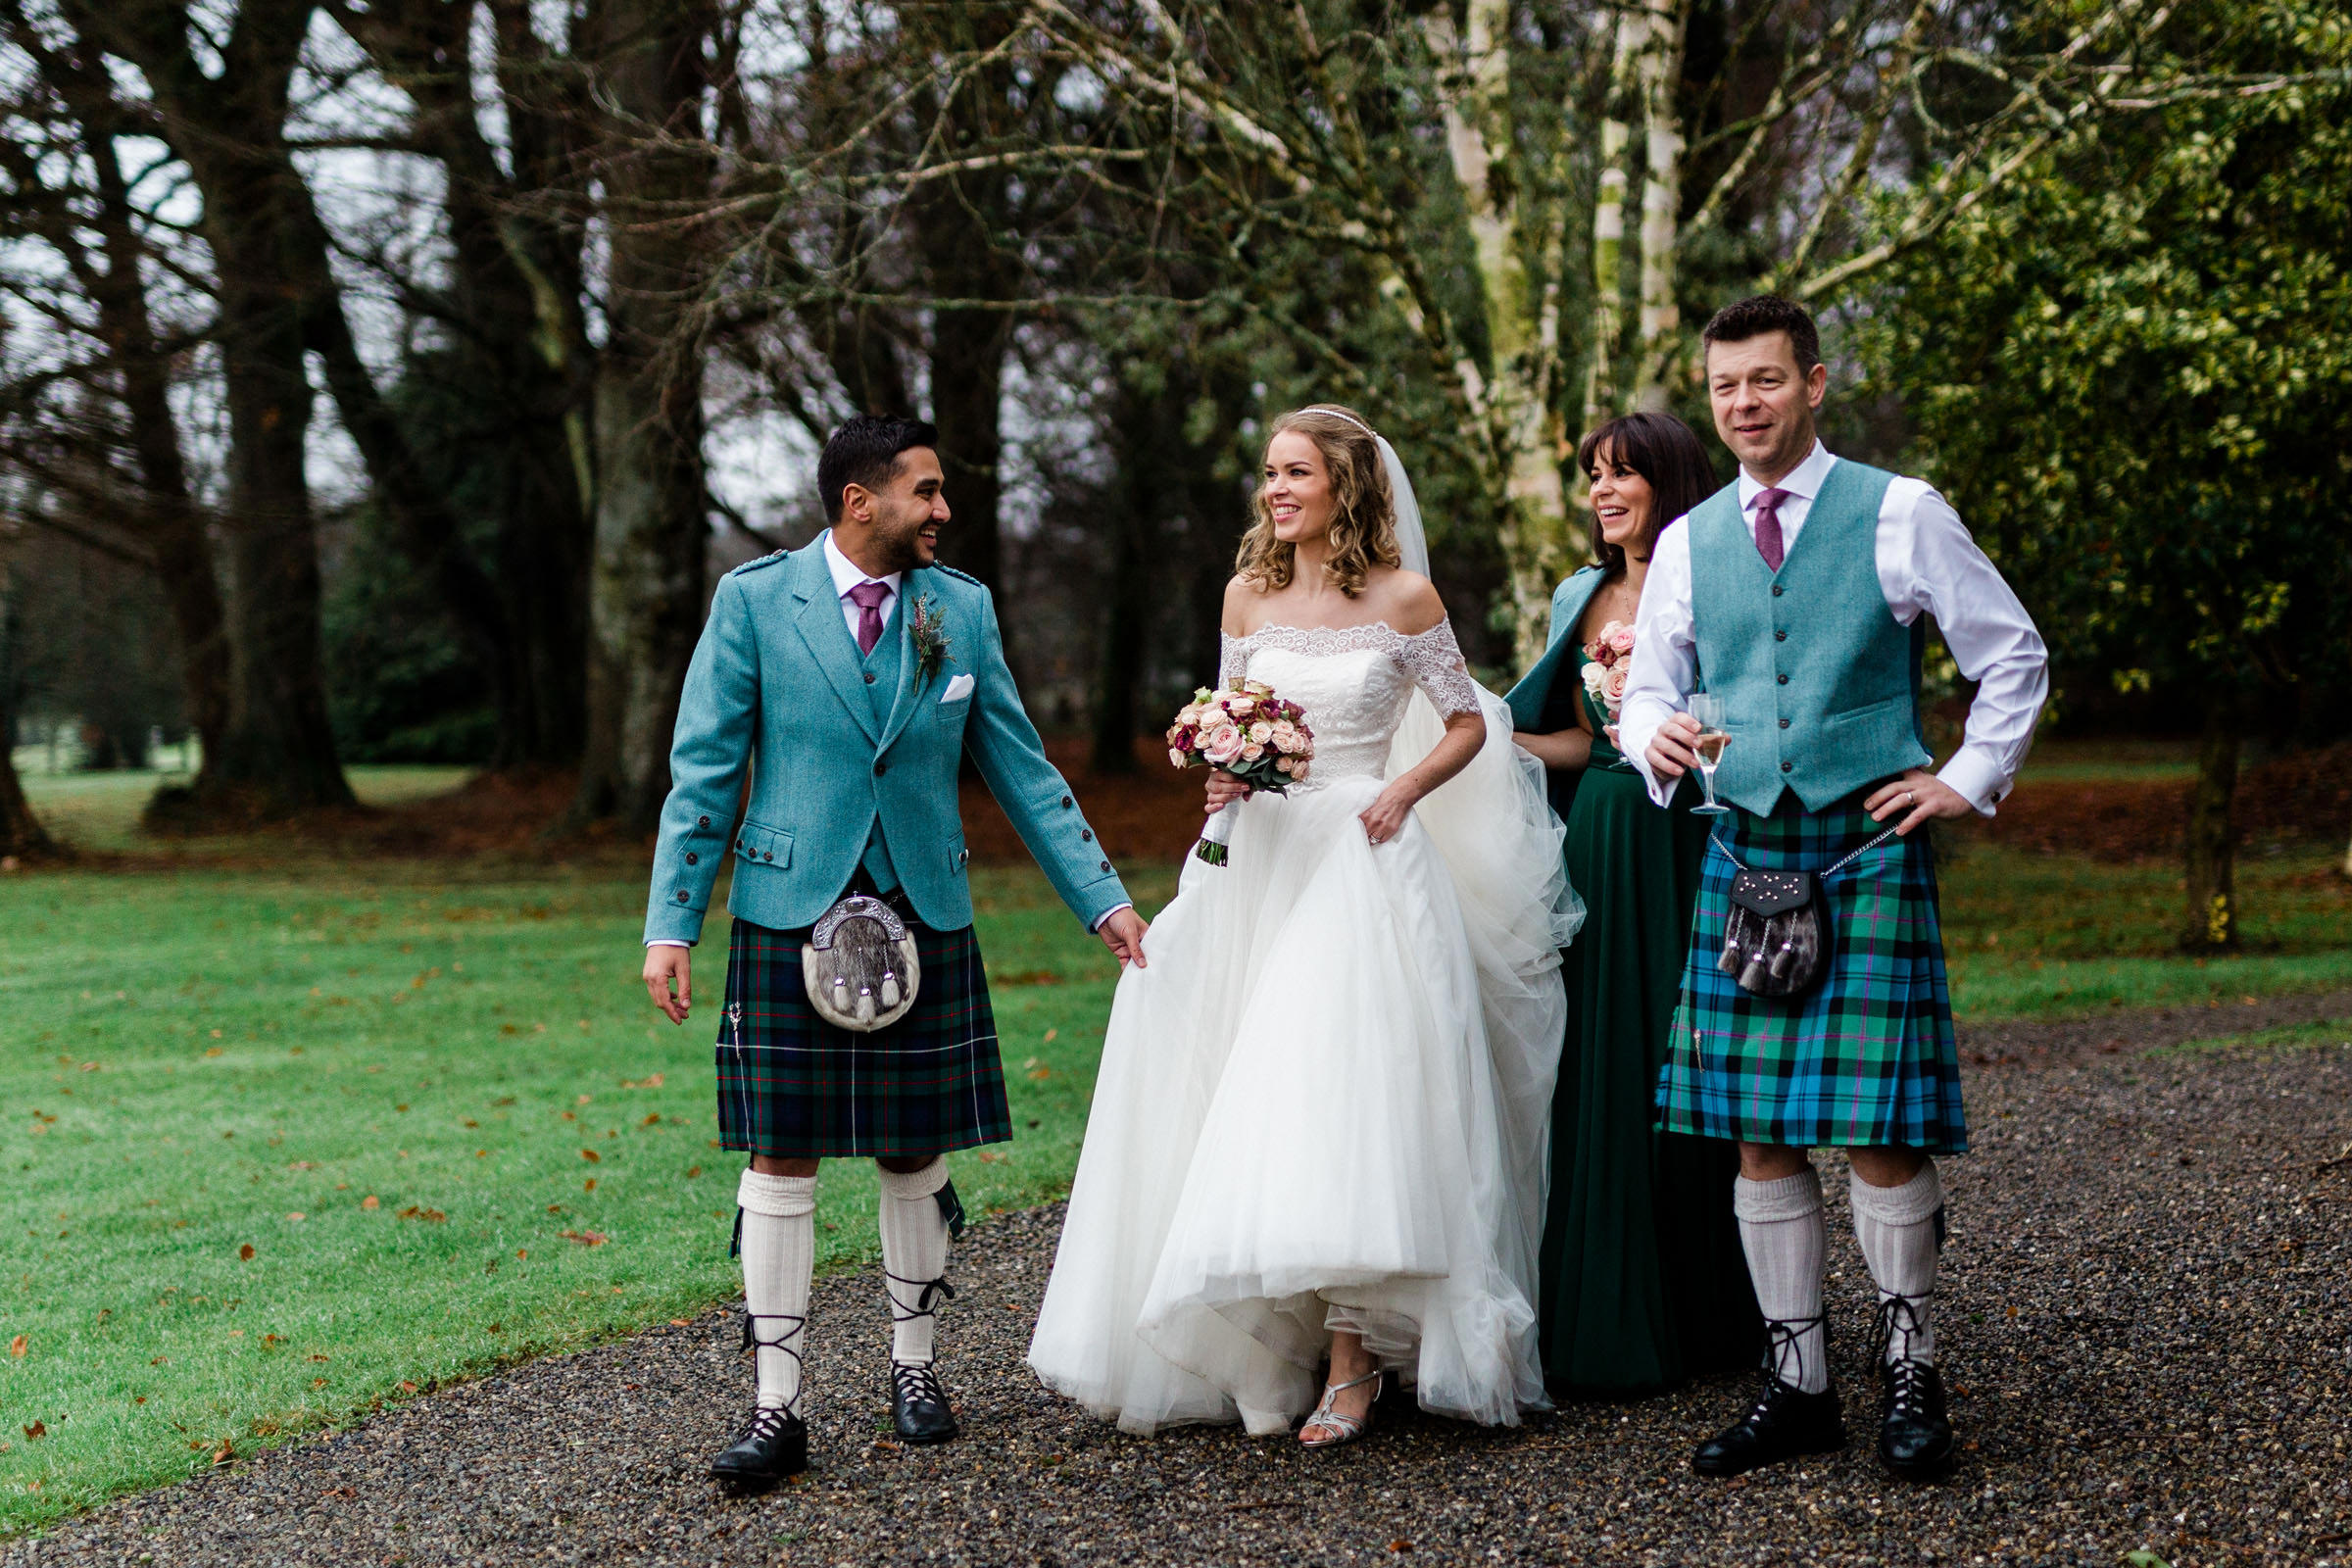 Groomsmen in kilts with bride - photo by The Portrait Rooms